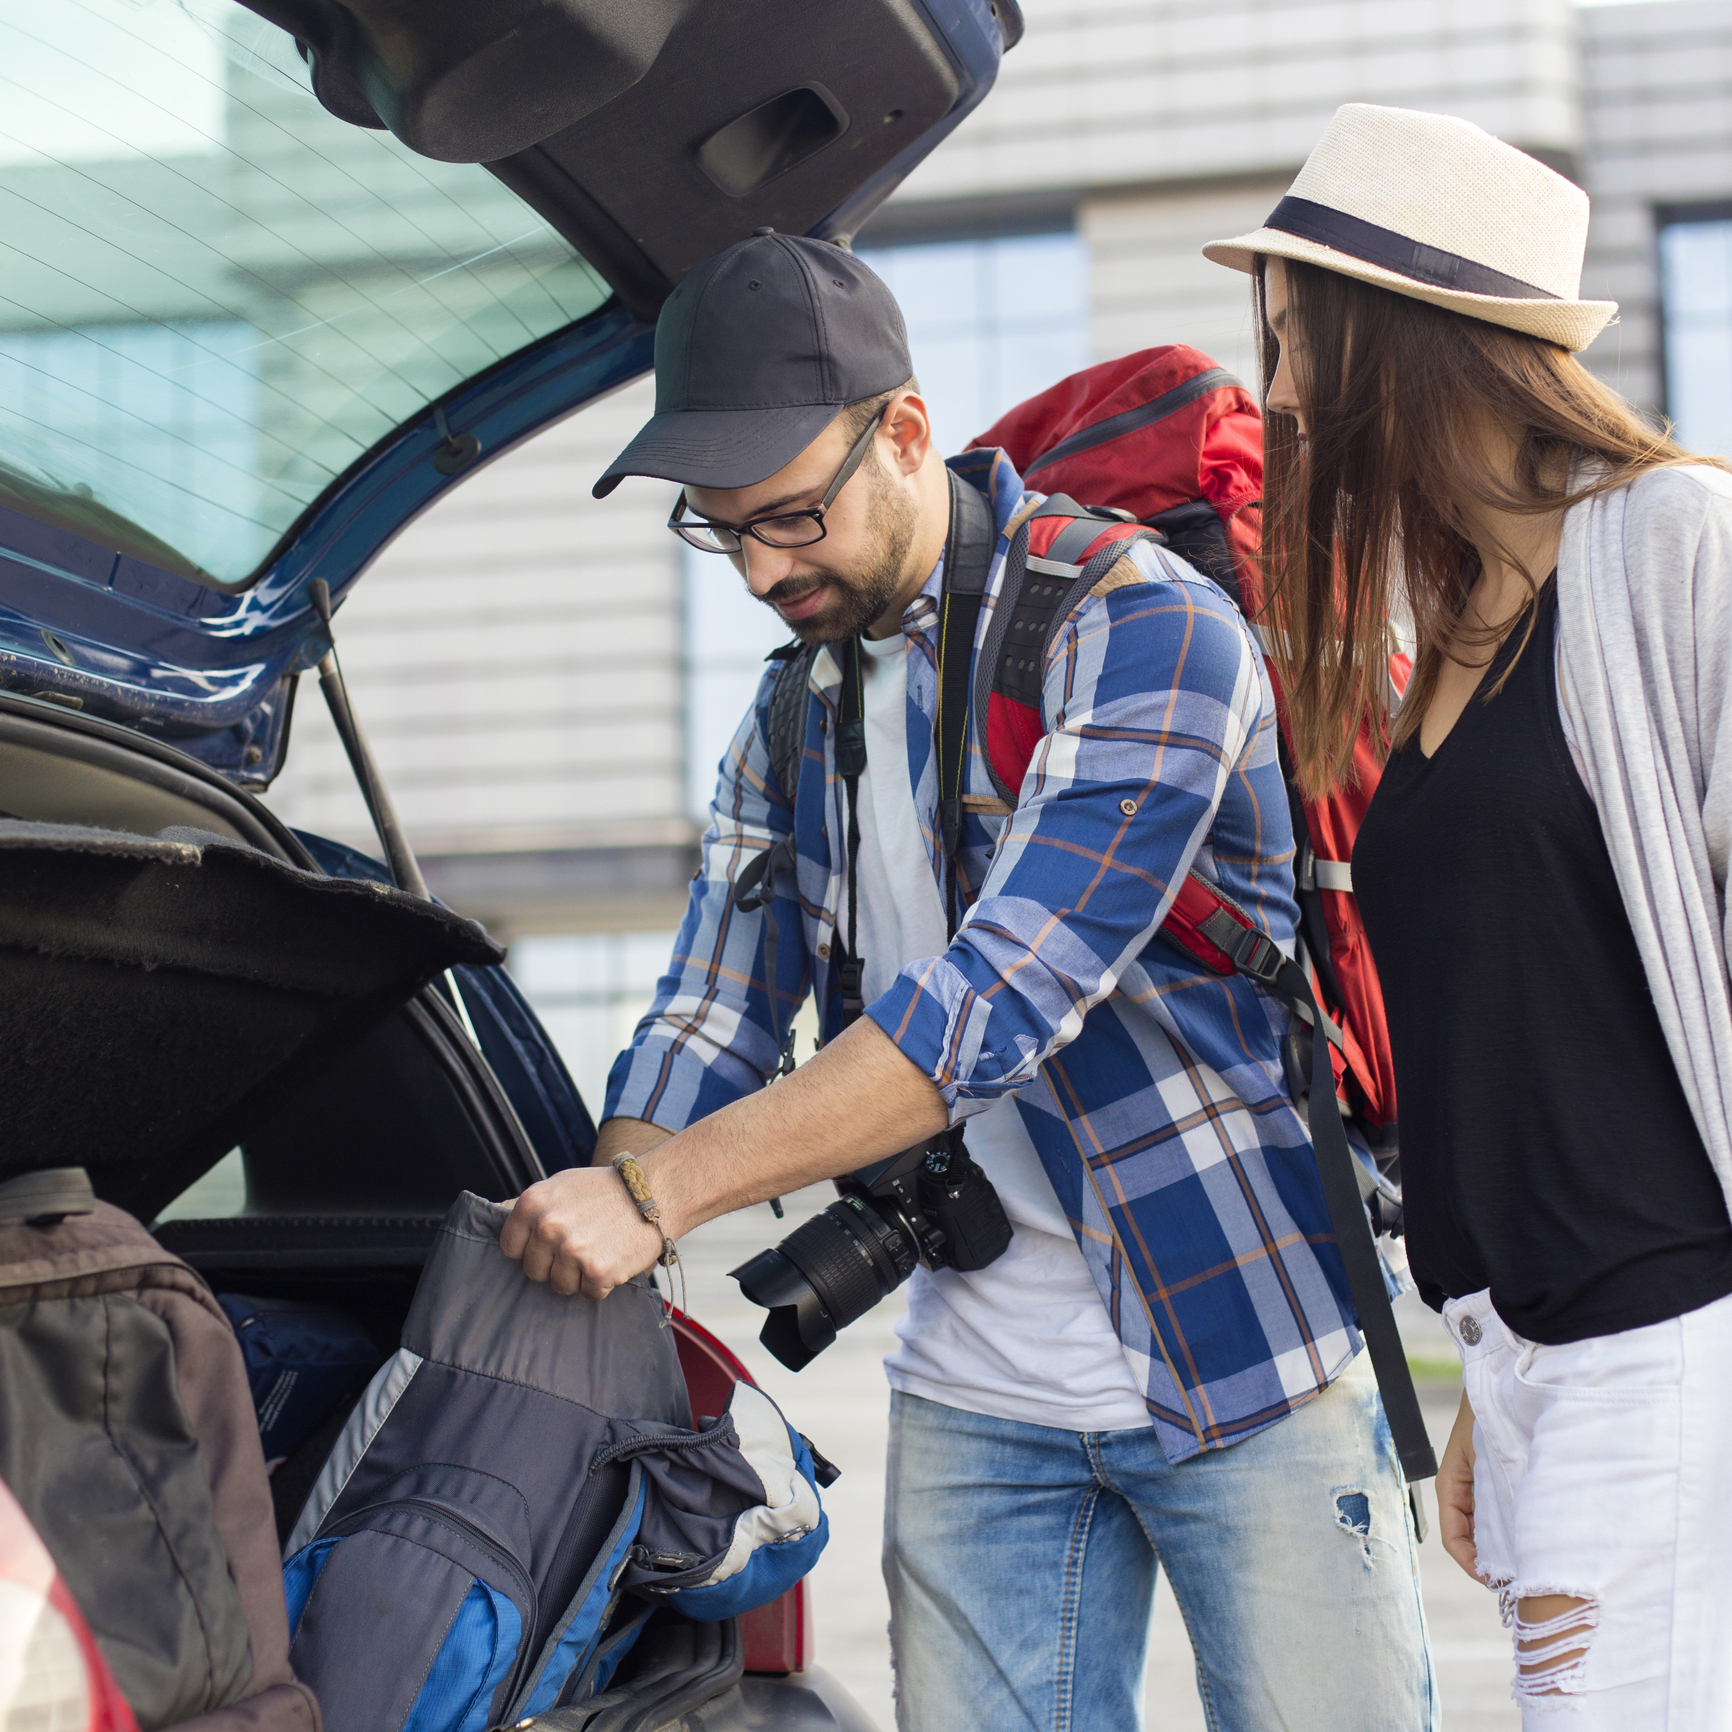 A couple with backpacks unloading their car, ready to head on their holiday